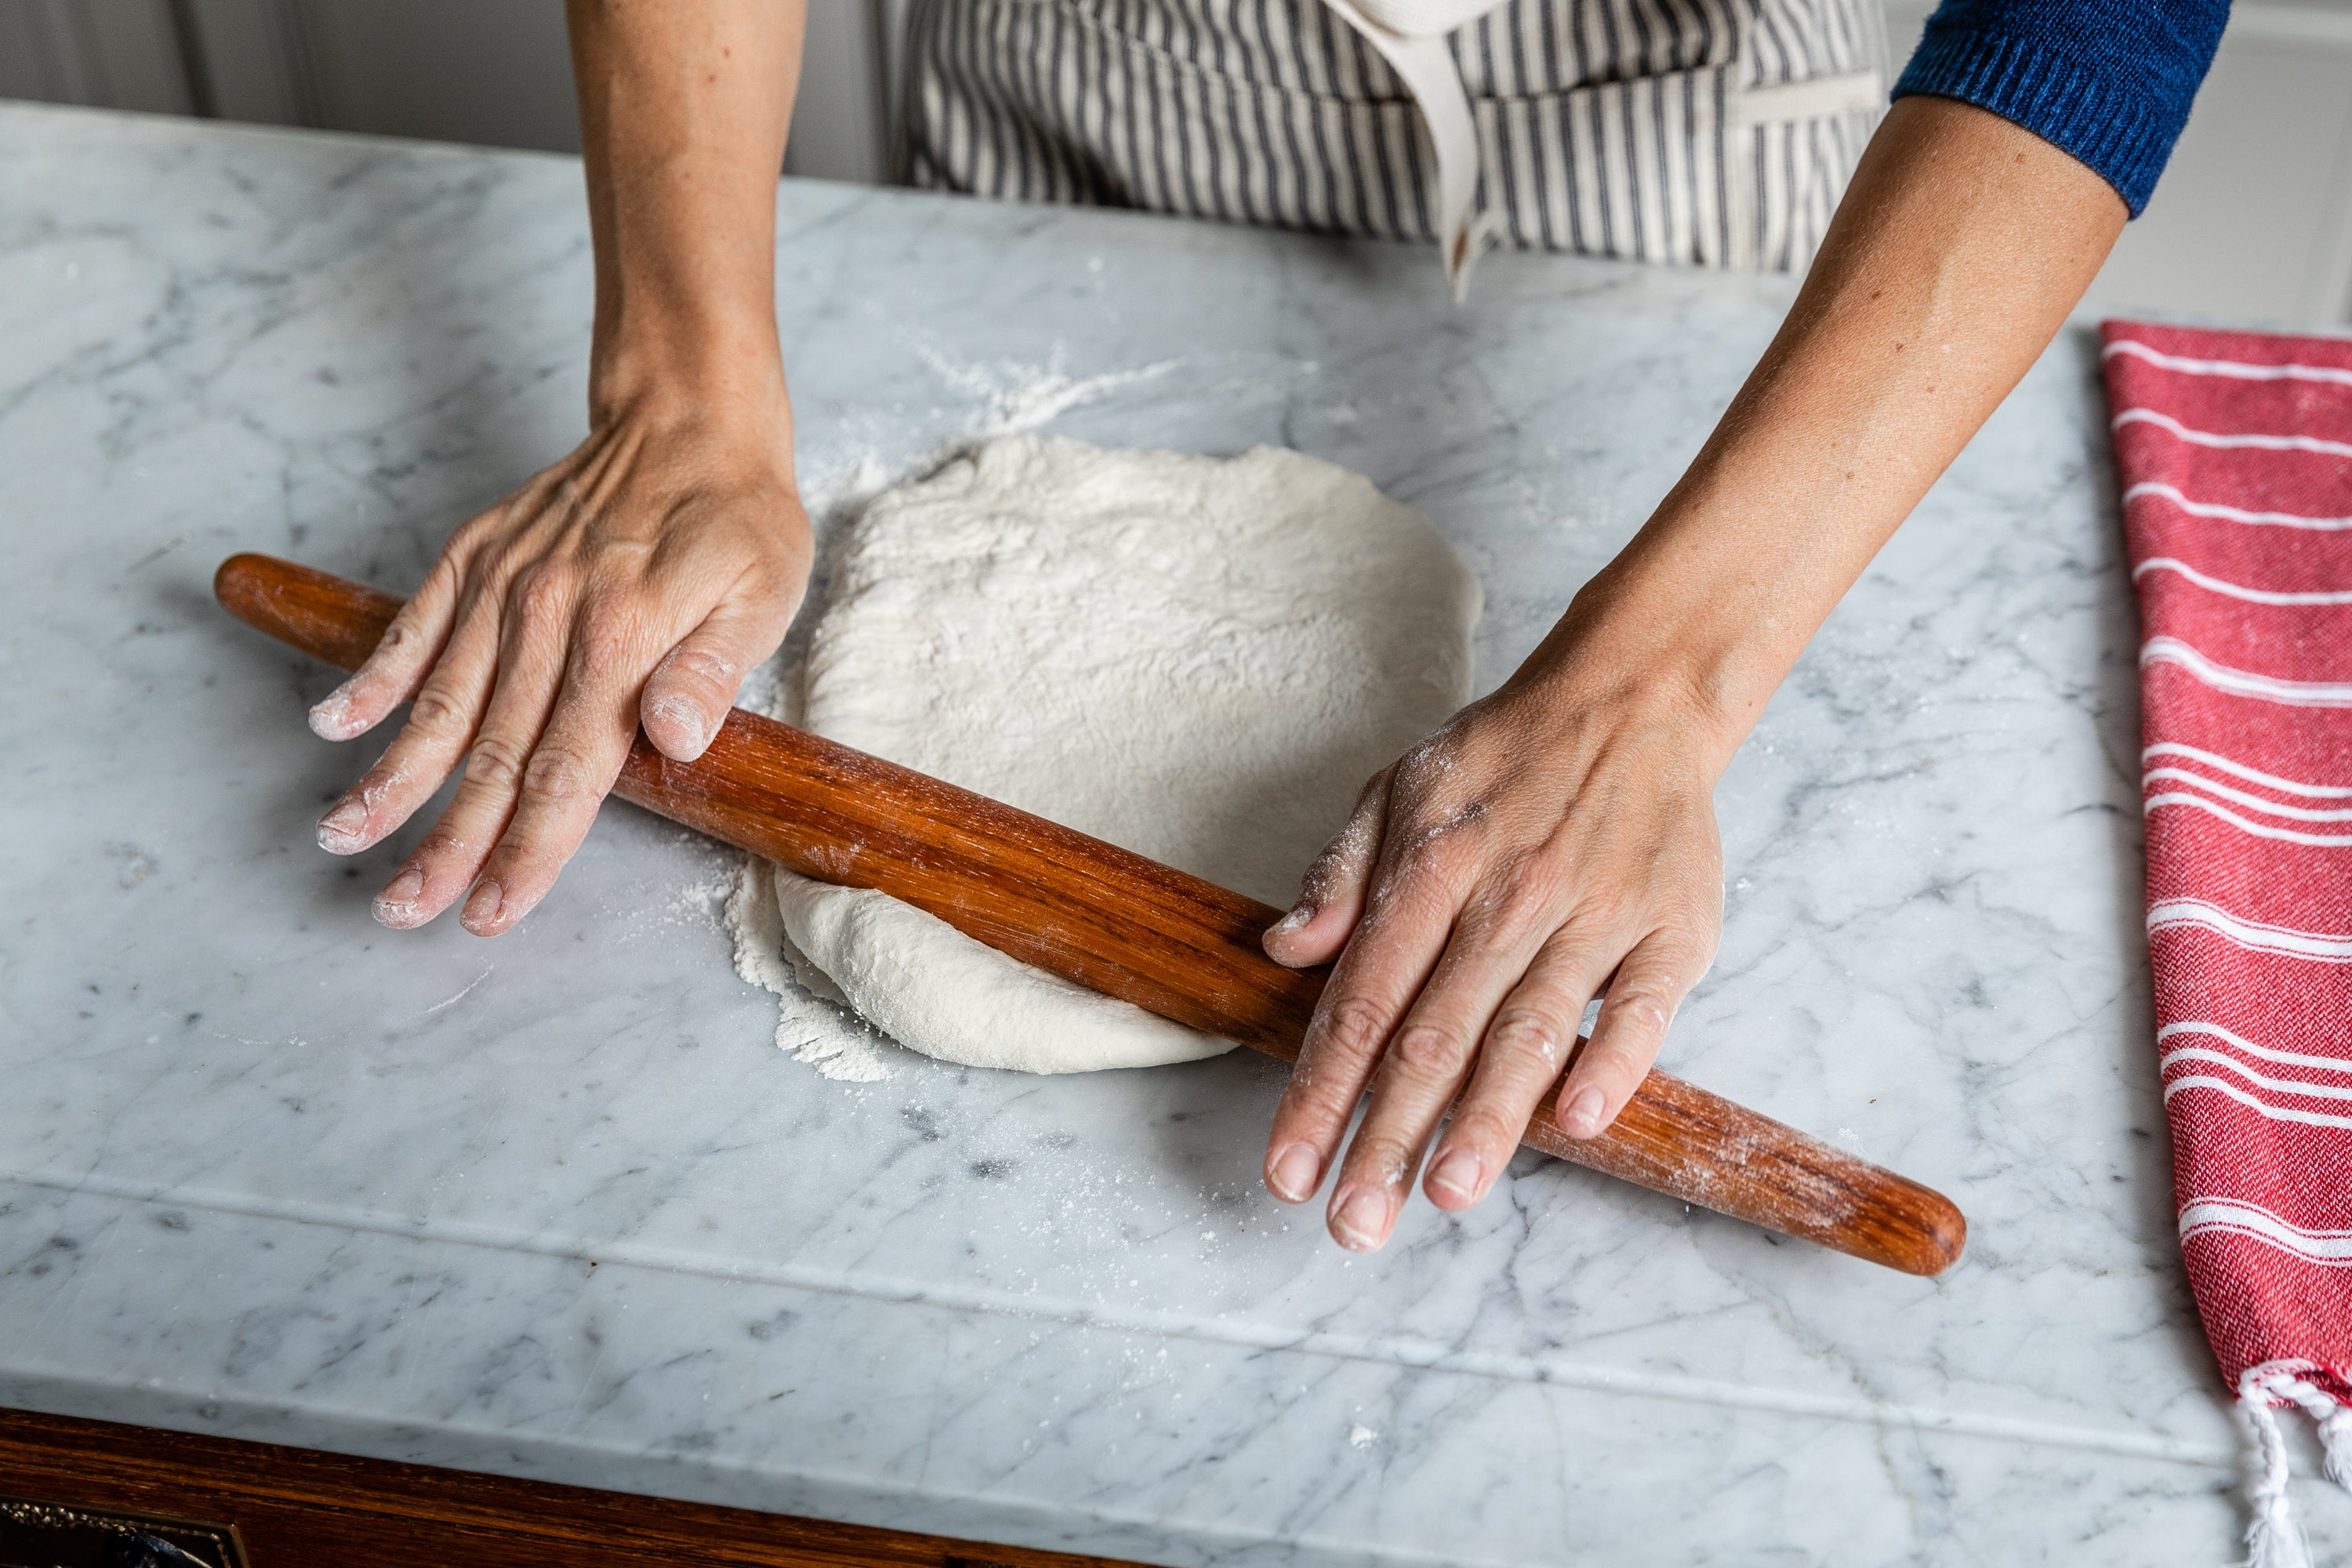 Tapered wooden rolling pin made in the USA